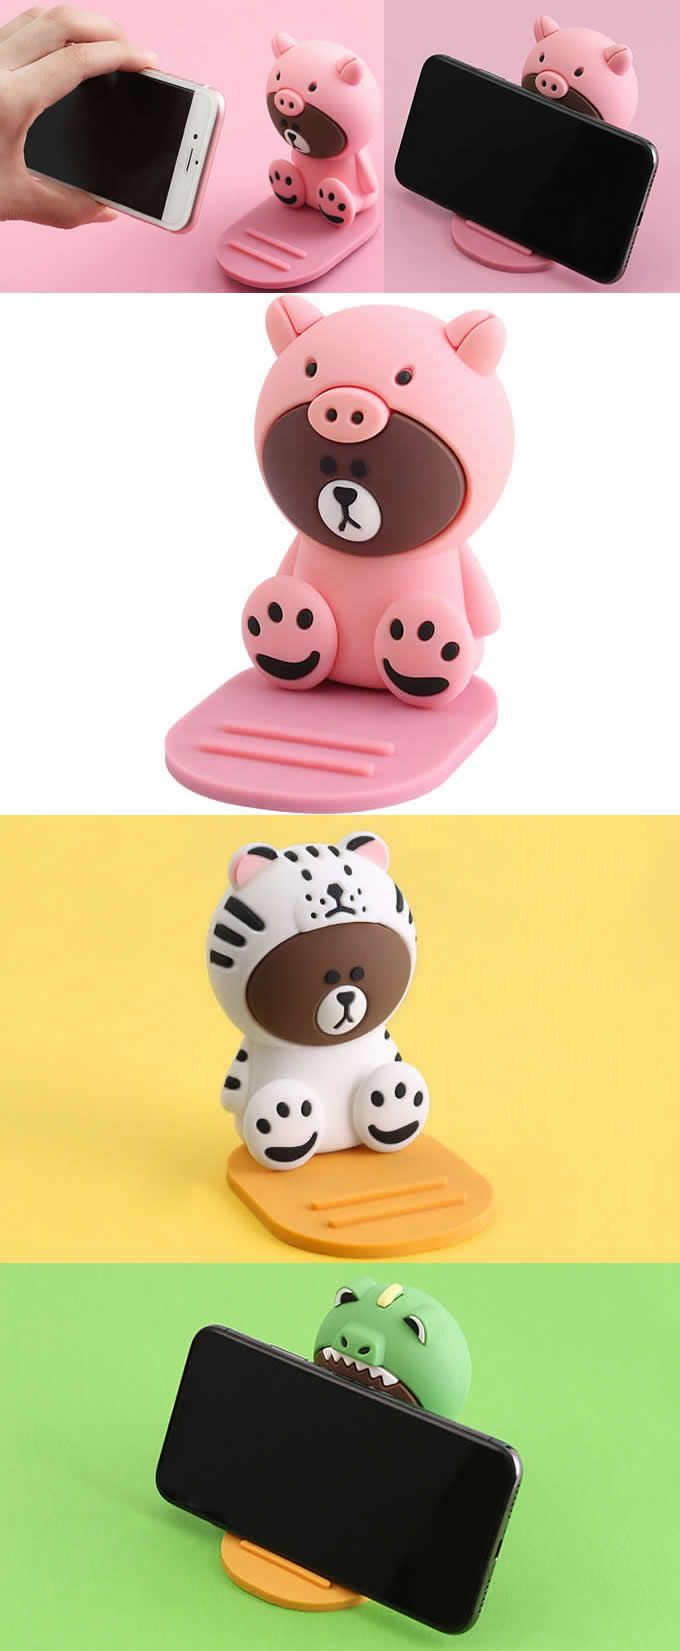 A Animal Shape Iphone Cell Iphone Stand Mount Holder Business Card Display Stand Holder Business Card Displays Cel Phone Phone Holder